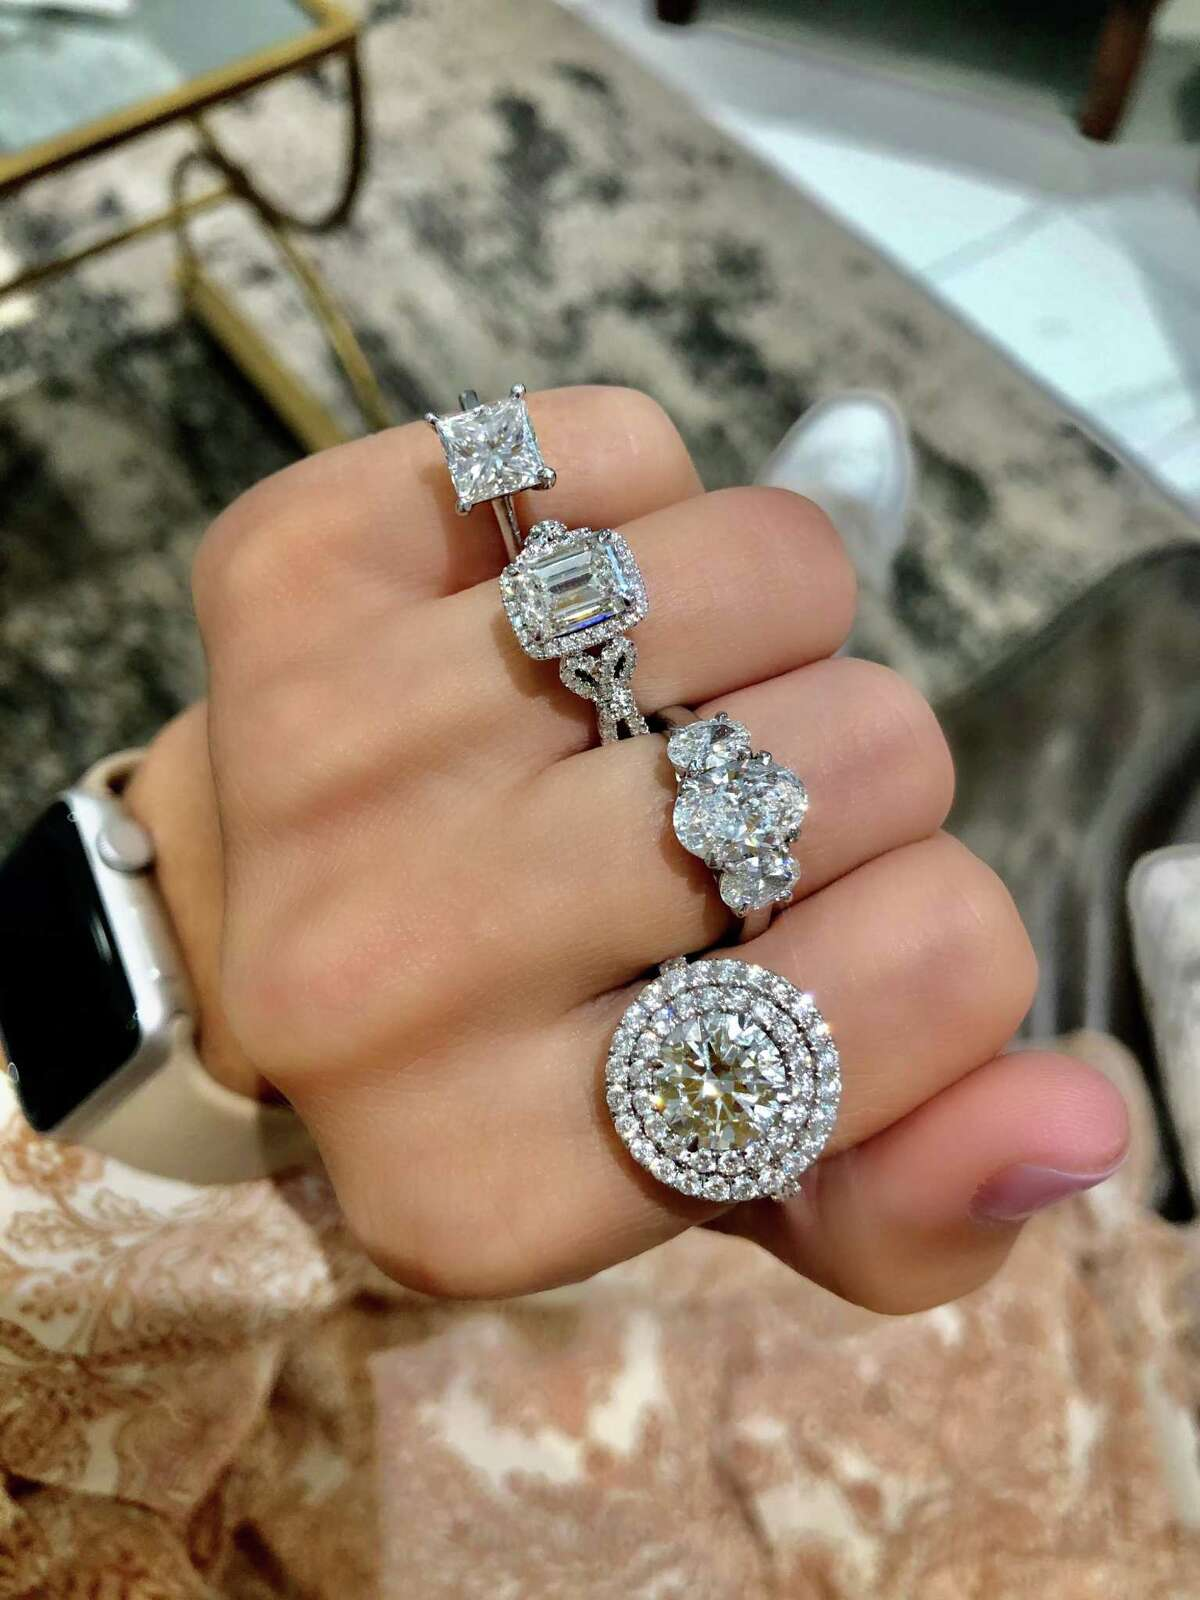 Diamonds Direct, a global diamond importer, has opened their first Houston location in Uptown at 3115 West Loop South.